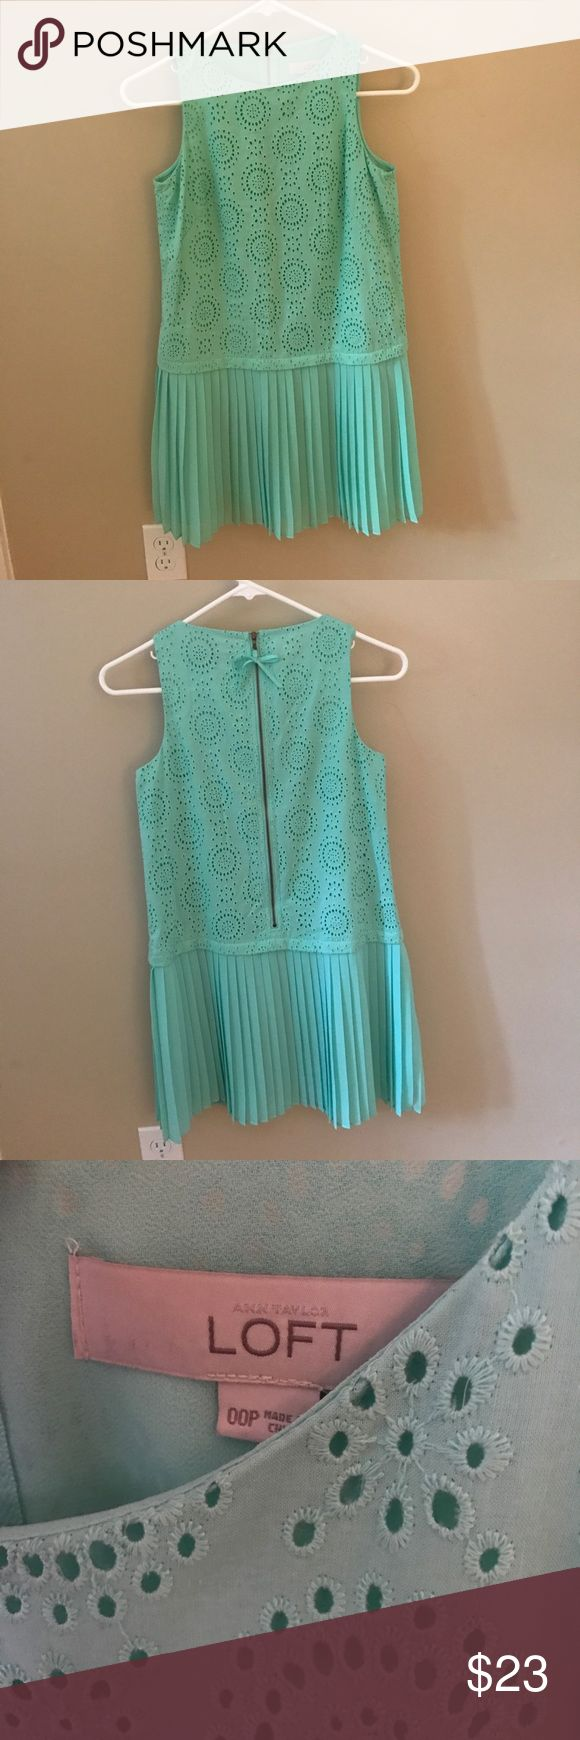 LOFT dress cute turquoise LOFT dress in perfect condition- only worn once! LOFT Dresses Mini